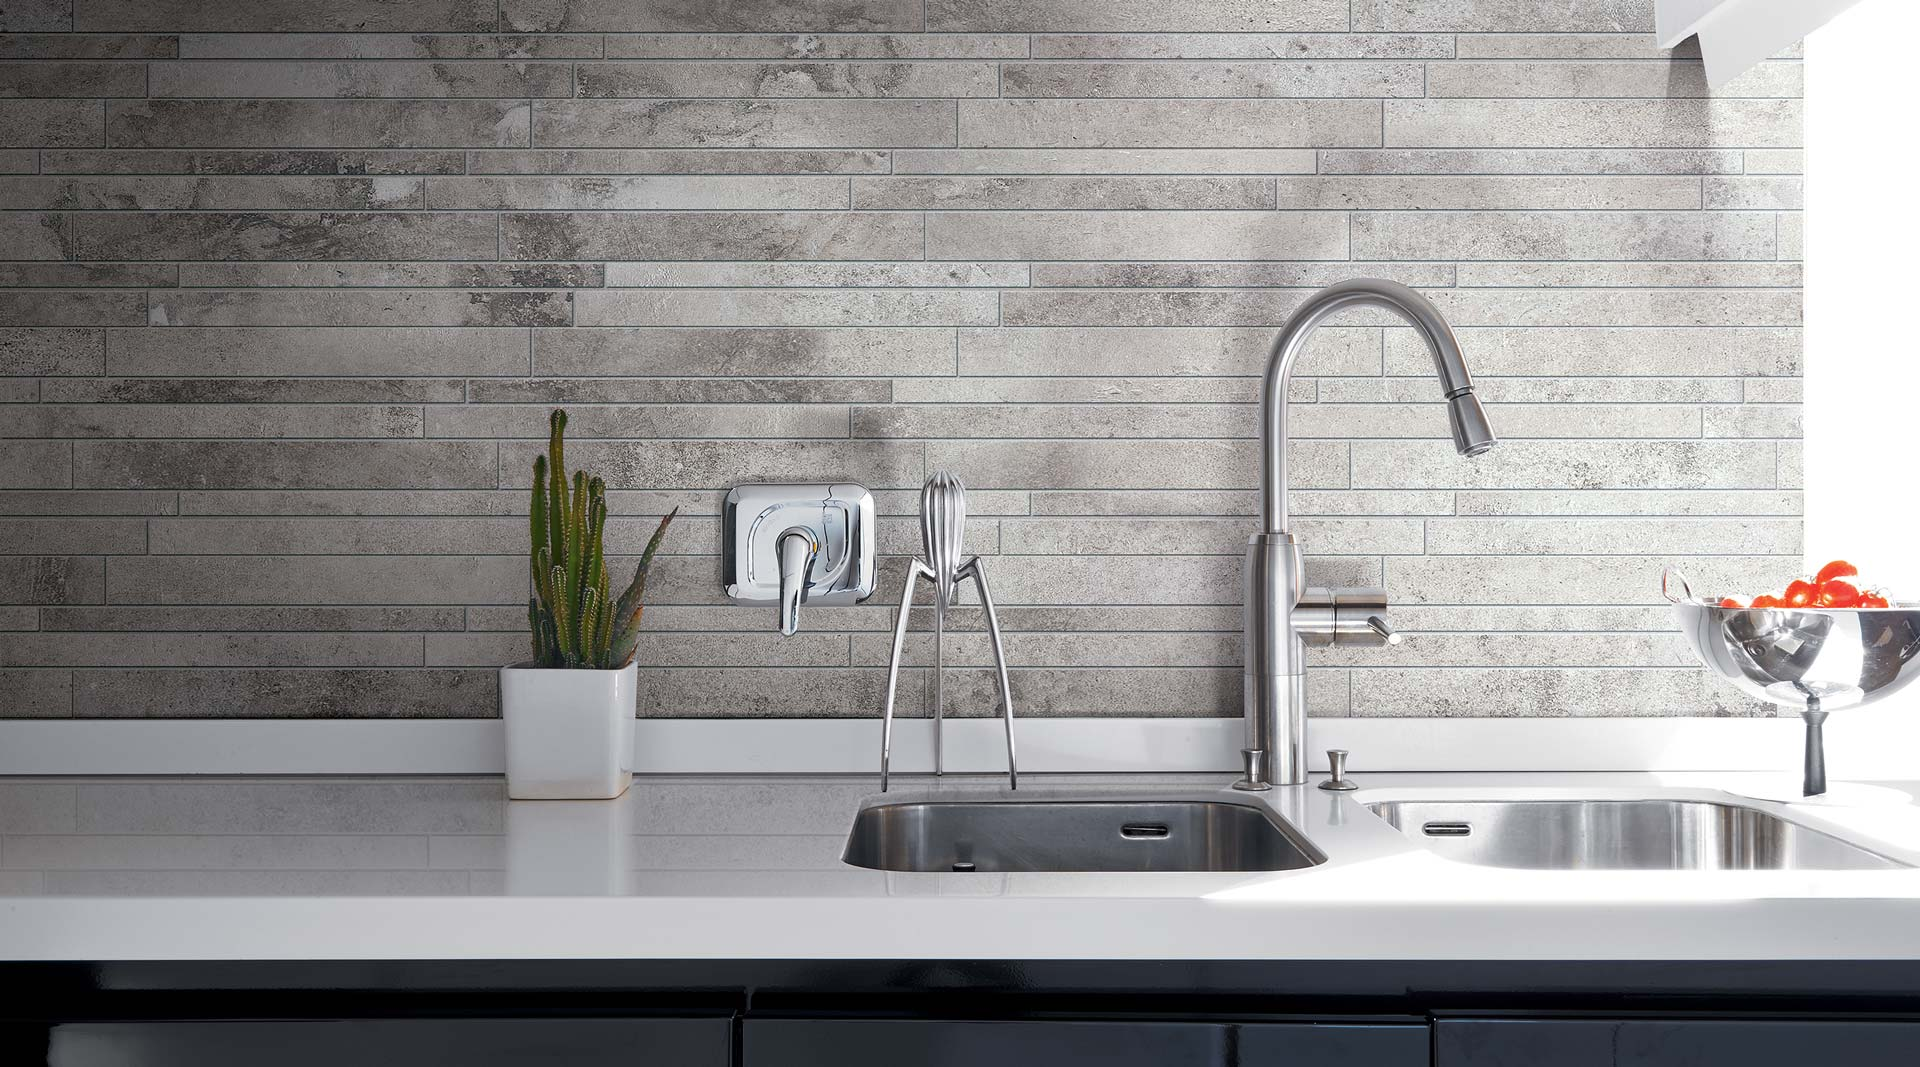 Kitchen tiles & Kitchen Tiles Countertops \u0026 Backsplashes | Florim Ceramiche S.p.A.